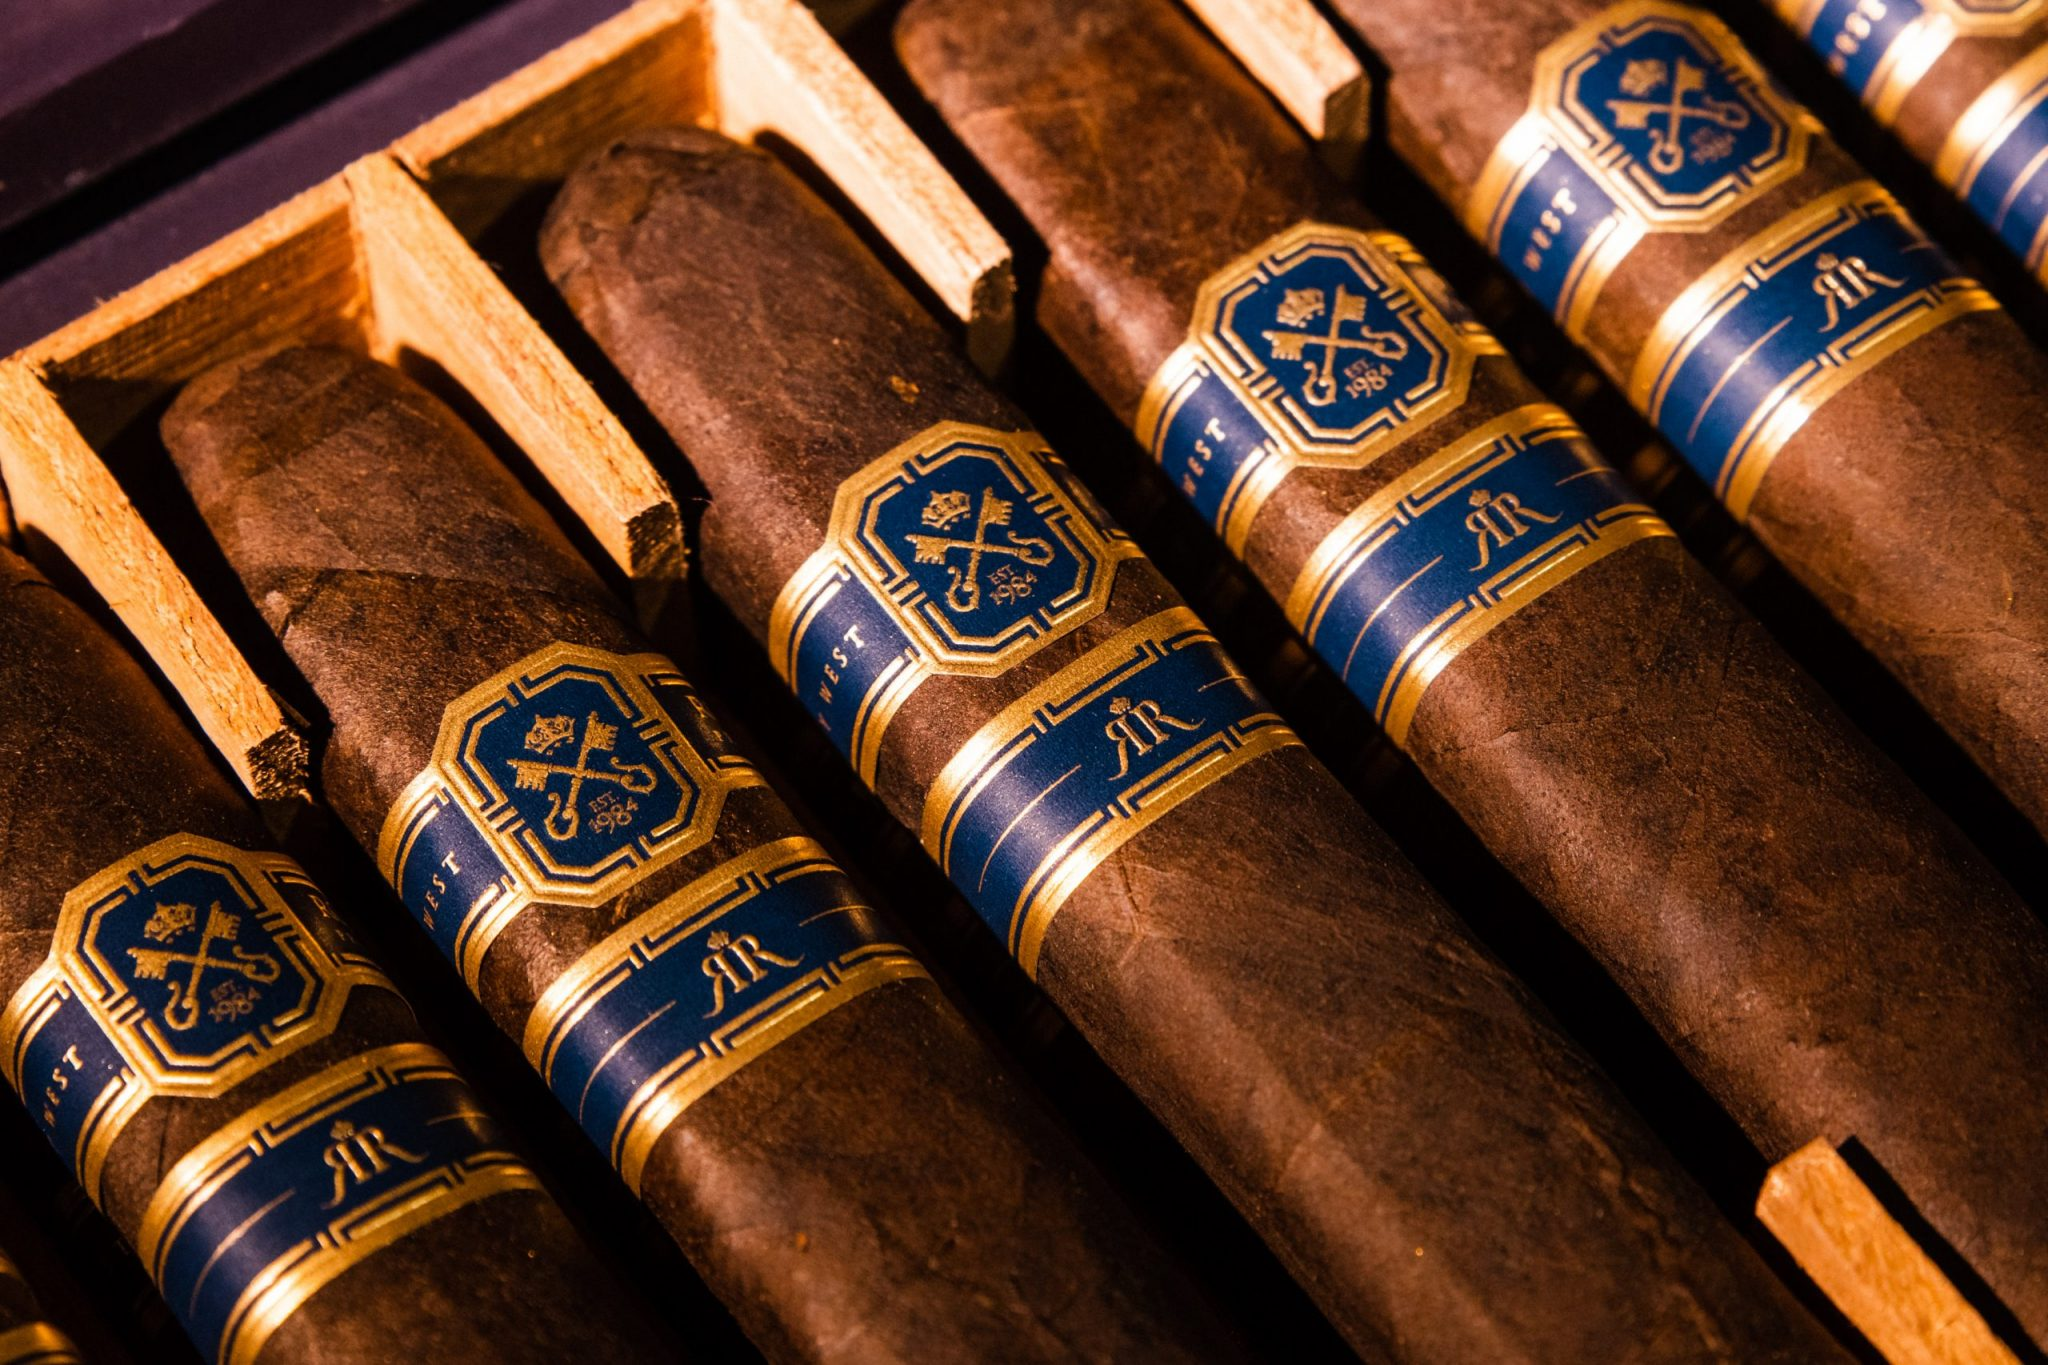 closeup shot of cigars for commercial photoshoot